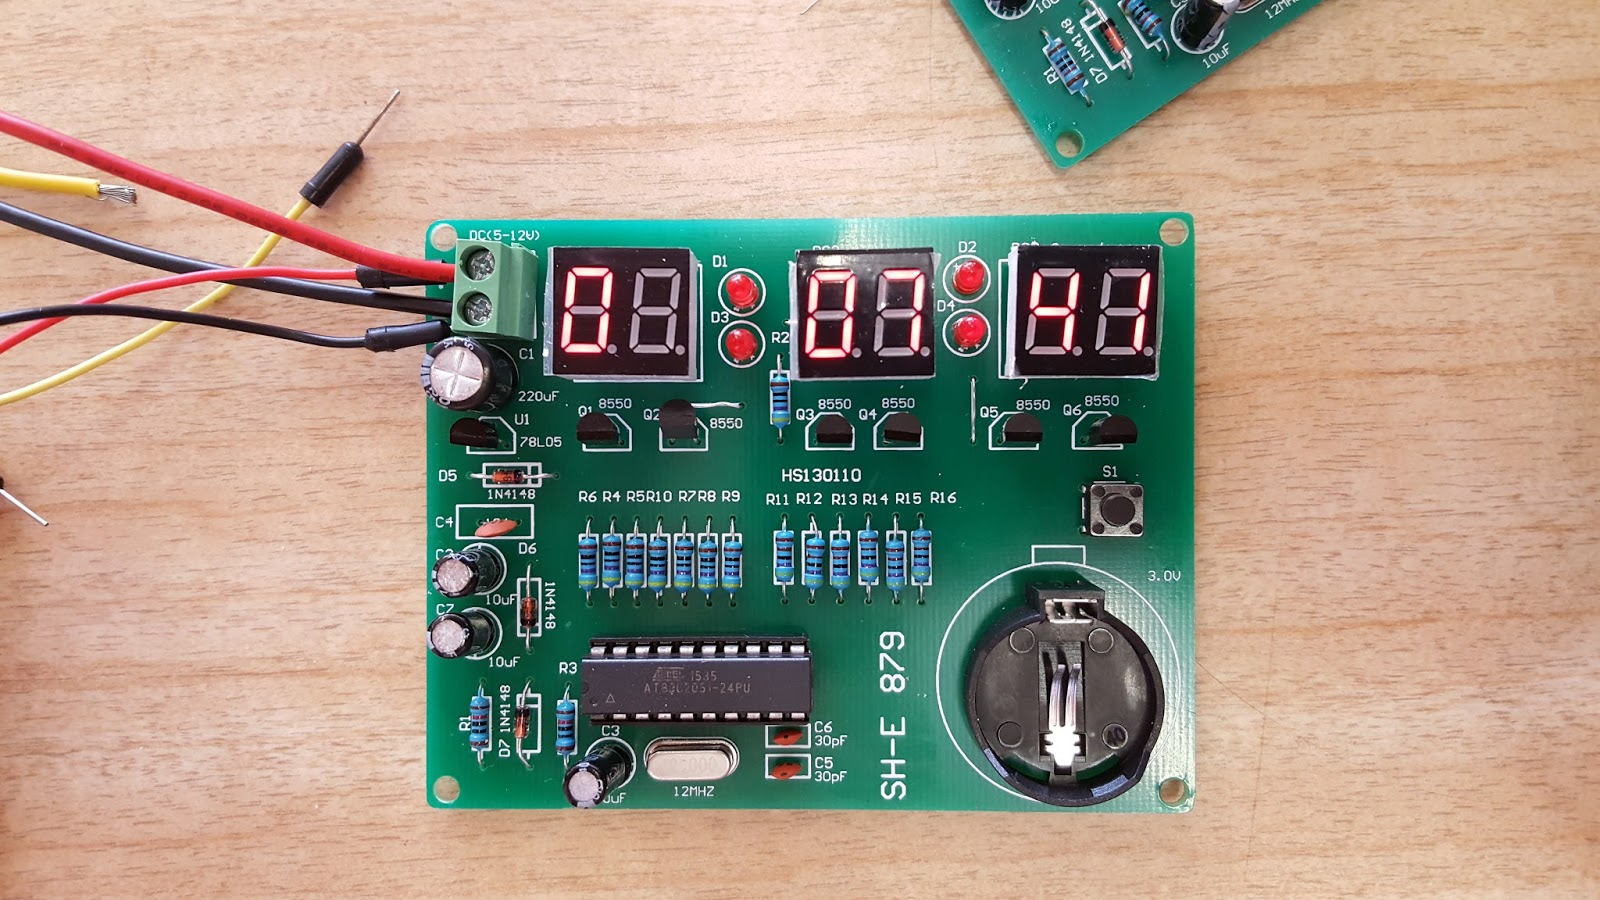 An Arduino Based Programmer For The At89c2051 Chip Ceptimus Digital Tachometer Using 8051 Electronic Circuits And Diagram I Wanted To Reprogram So Could Use Kit As A Stopwatch Timer Instead Of Regular Clock Course Have Bought Do